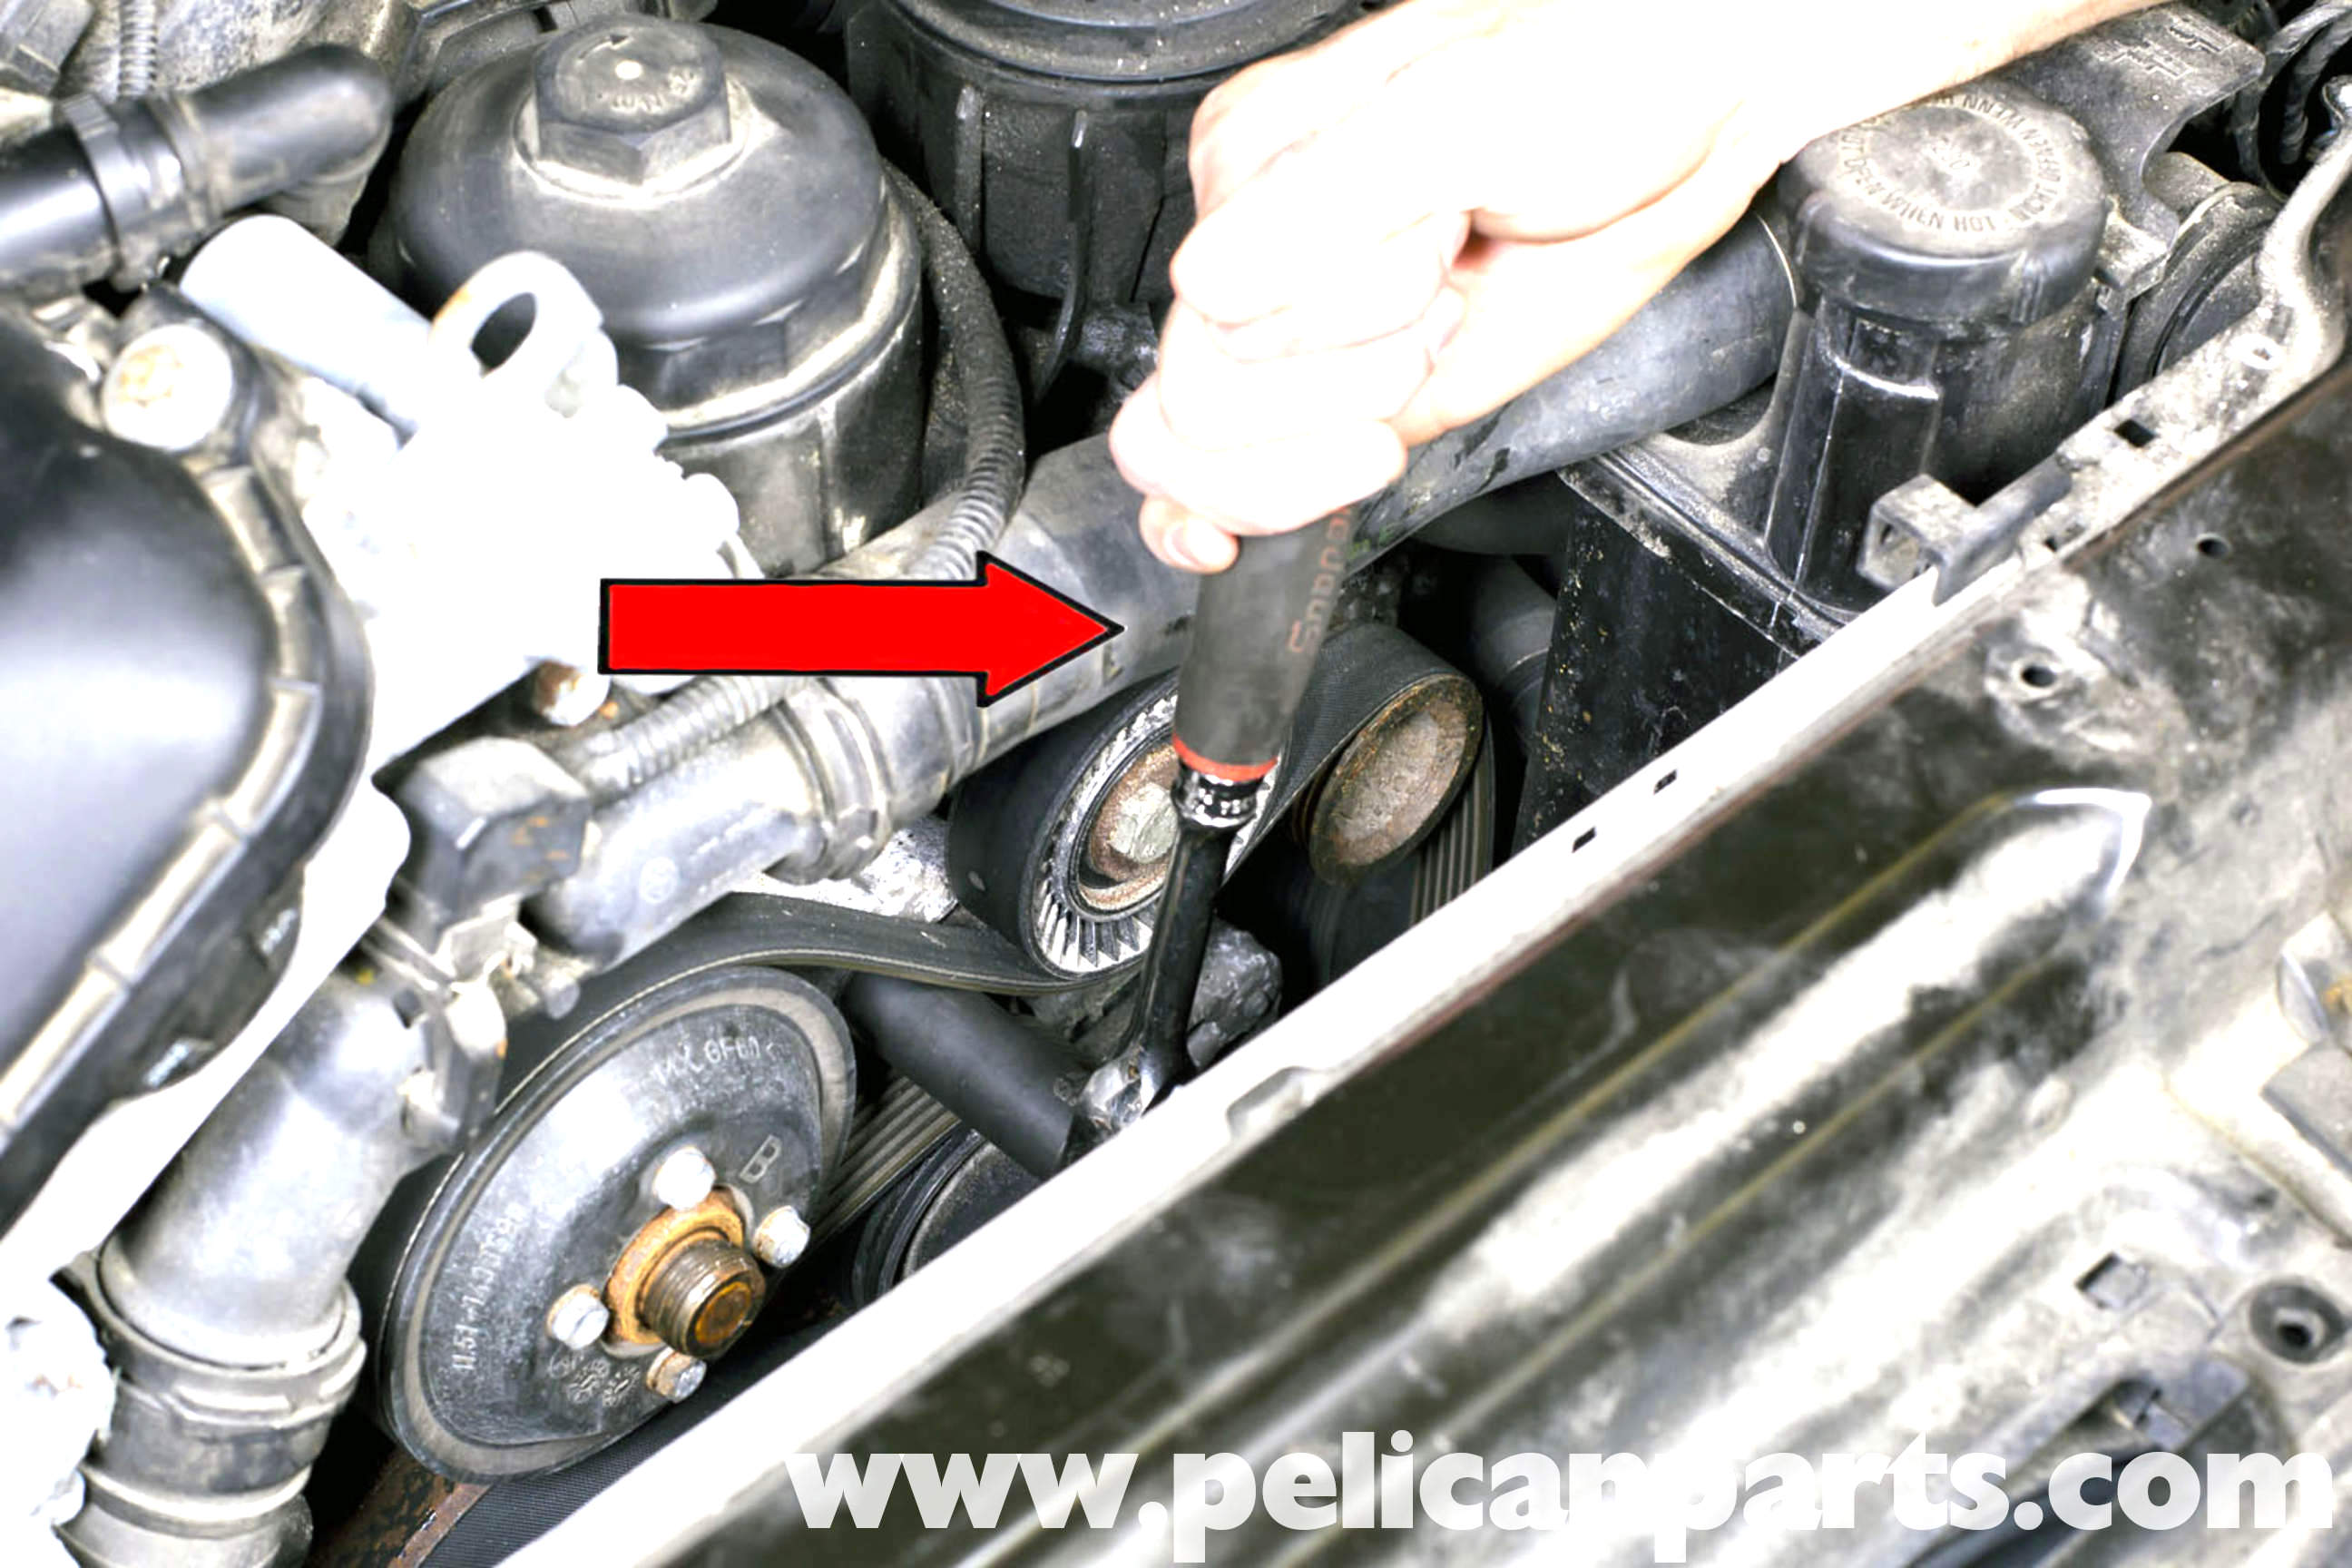 diesel engine starter diagram how to hook up a water softener bmw e39 5-series drive belt replacement   1997-2003 525i, 528i, 530i, 540i pelican parts diy ...